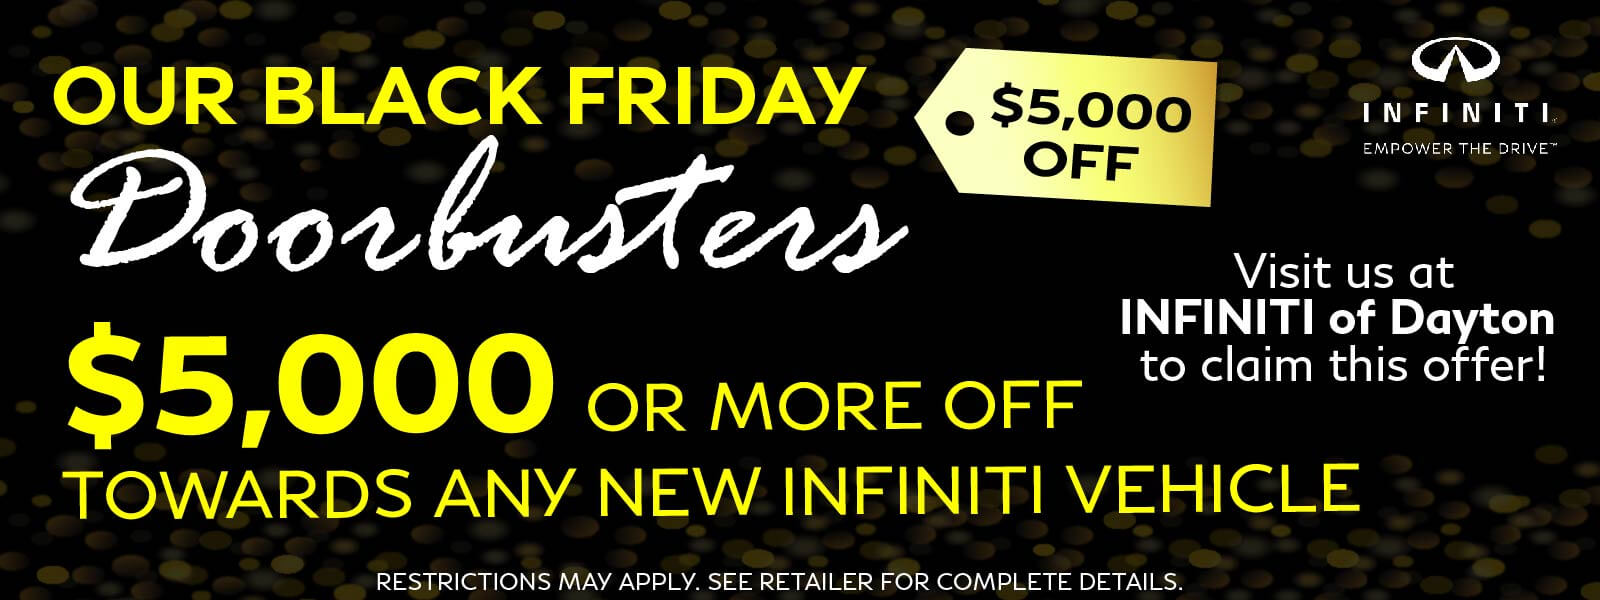 Our Black Friday Doorbusters $5,000 or more off towards any New INFINITI Vehicle